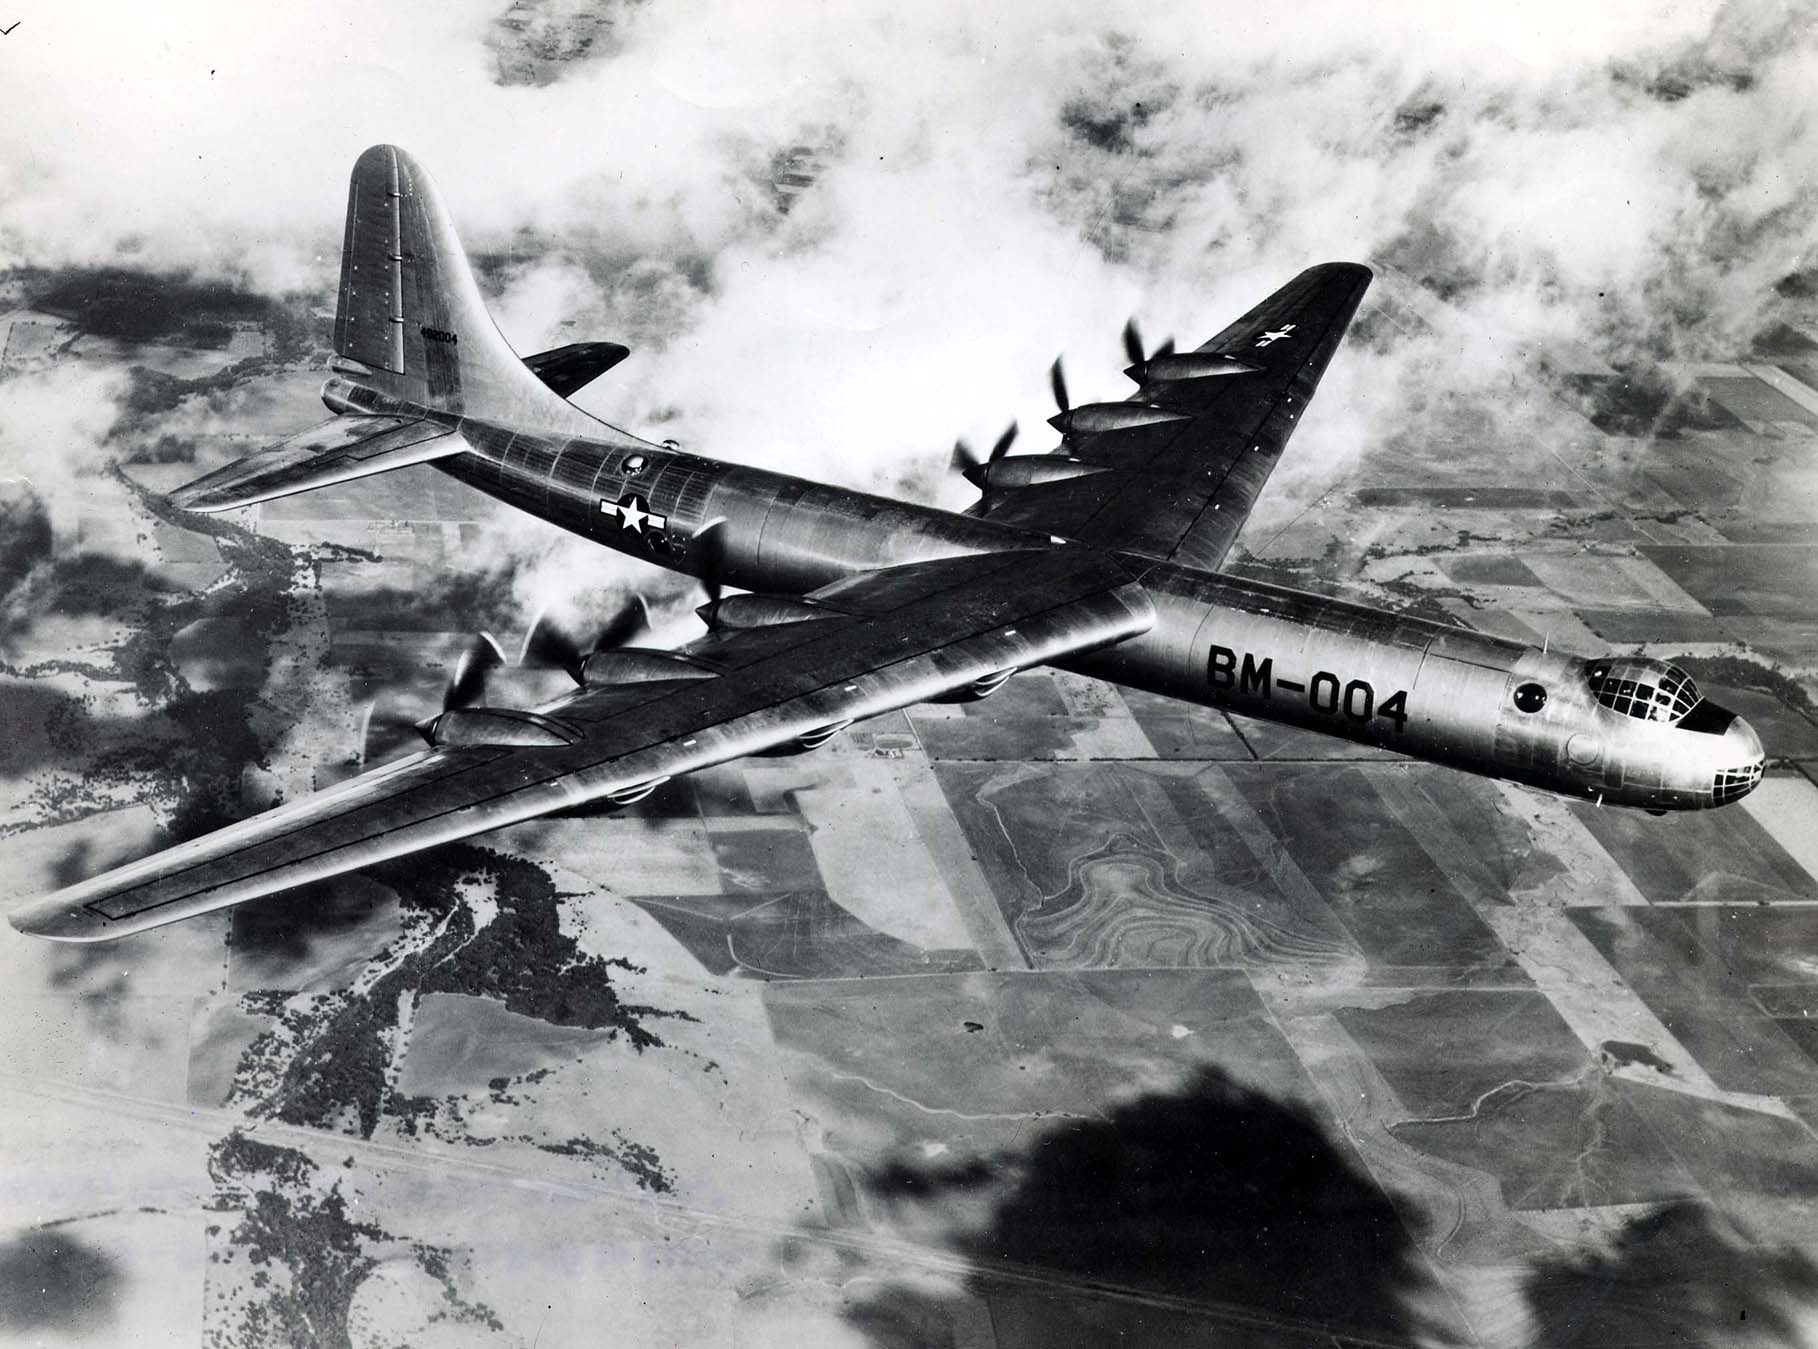 1947 B-36 without jet packs